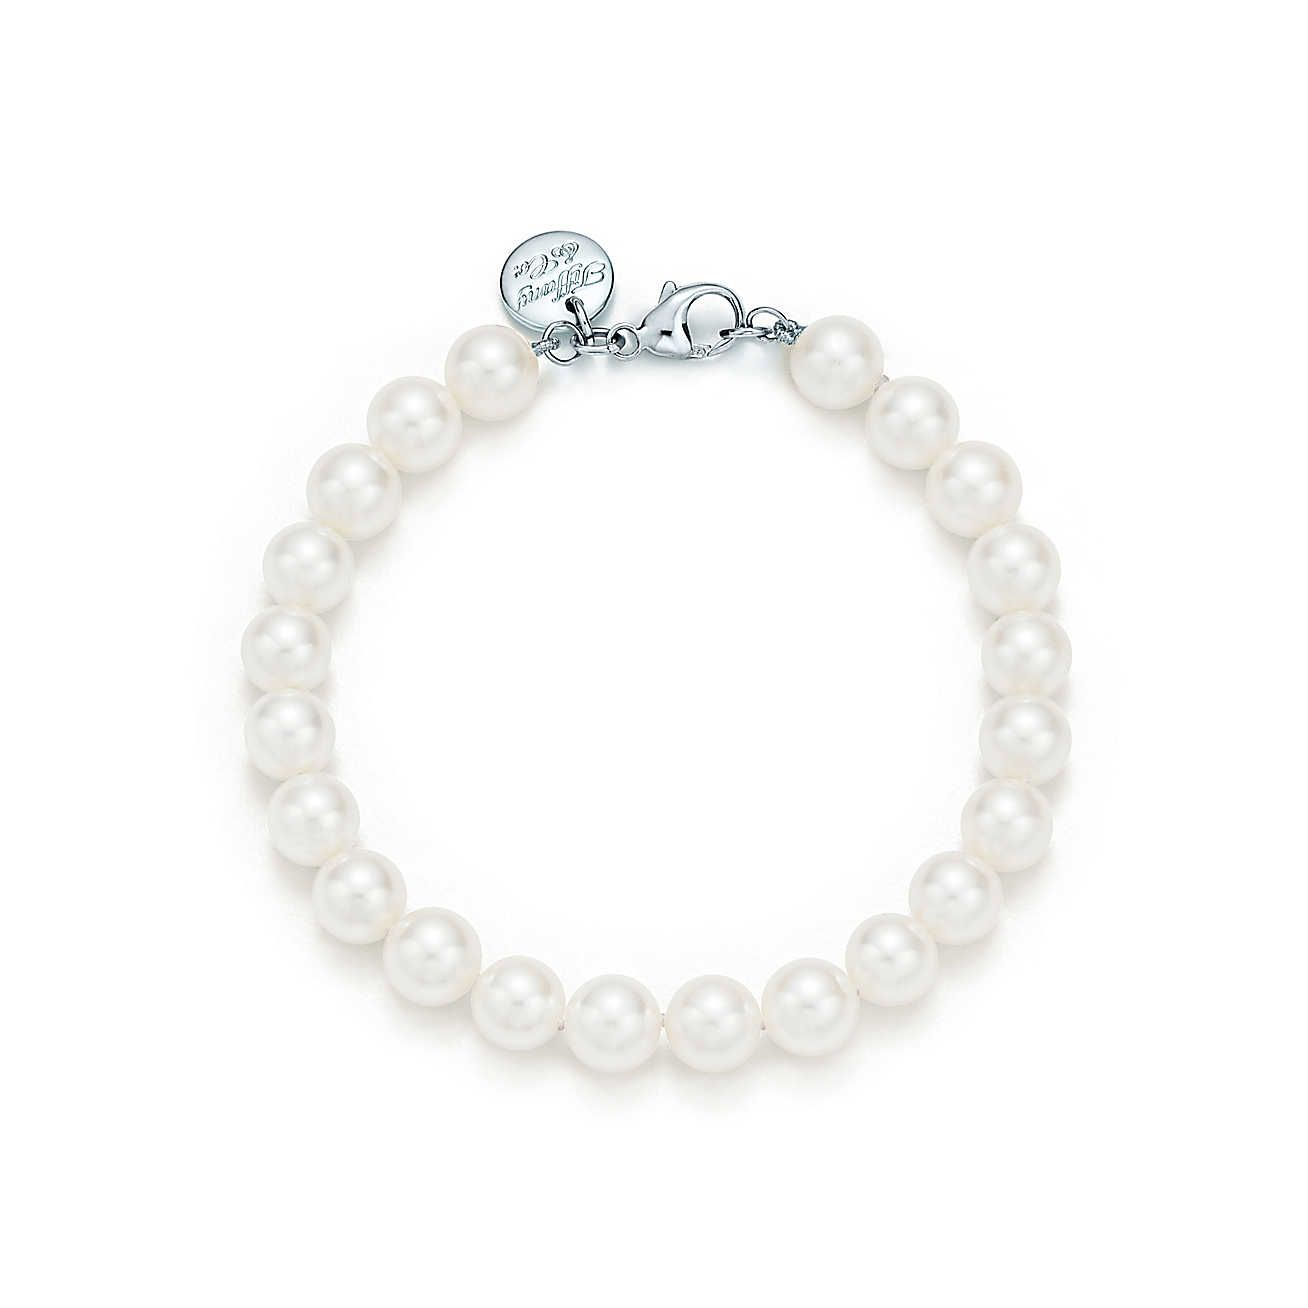 Stunning Pearl Bracelet From Tiffany Co